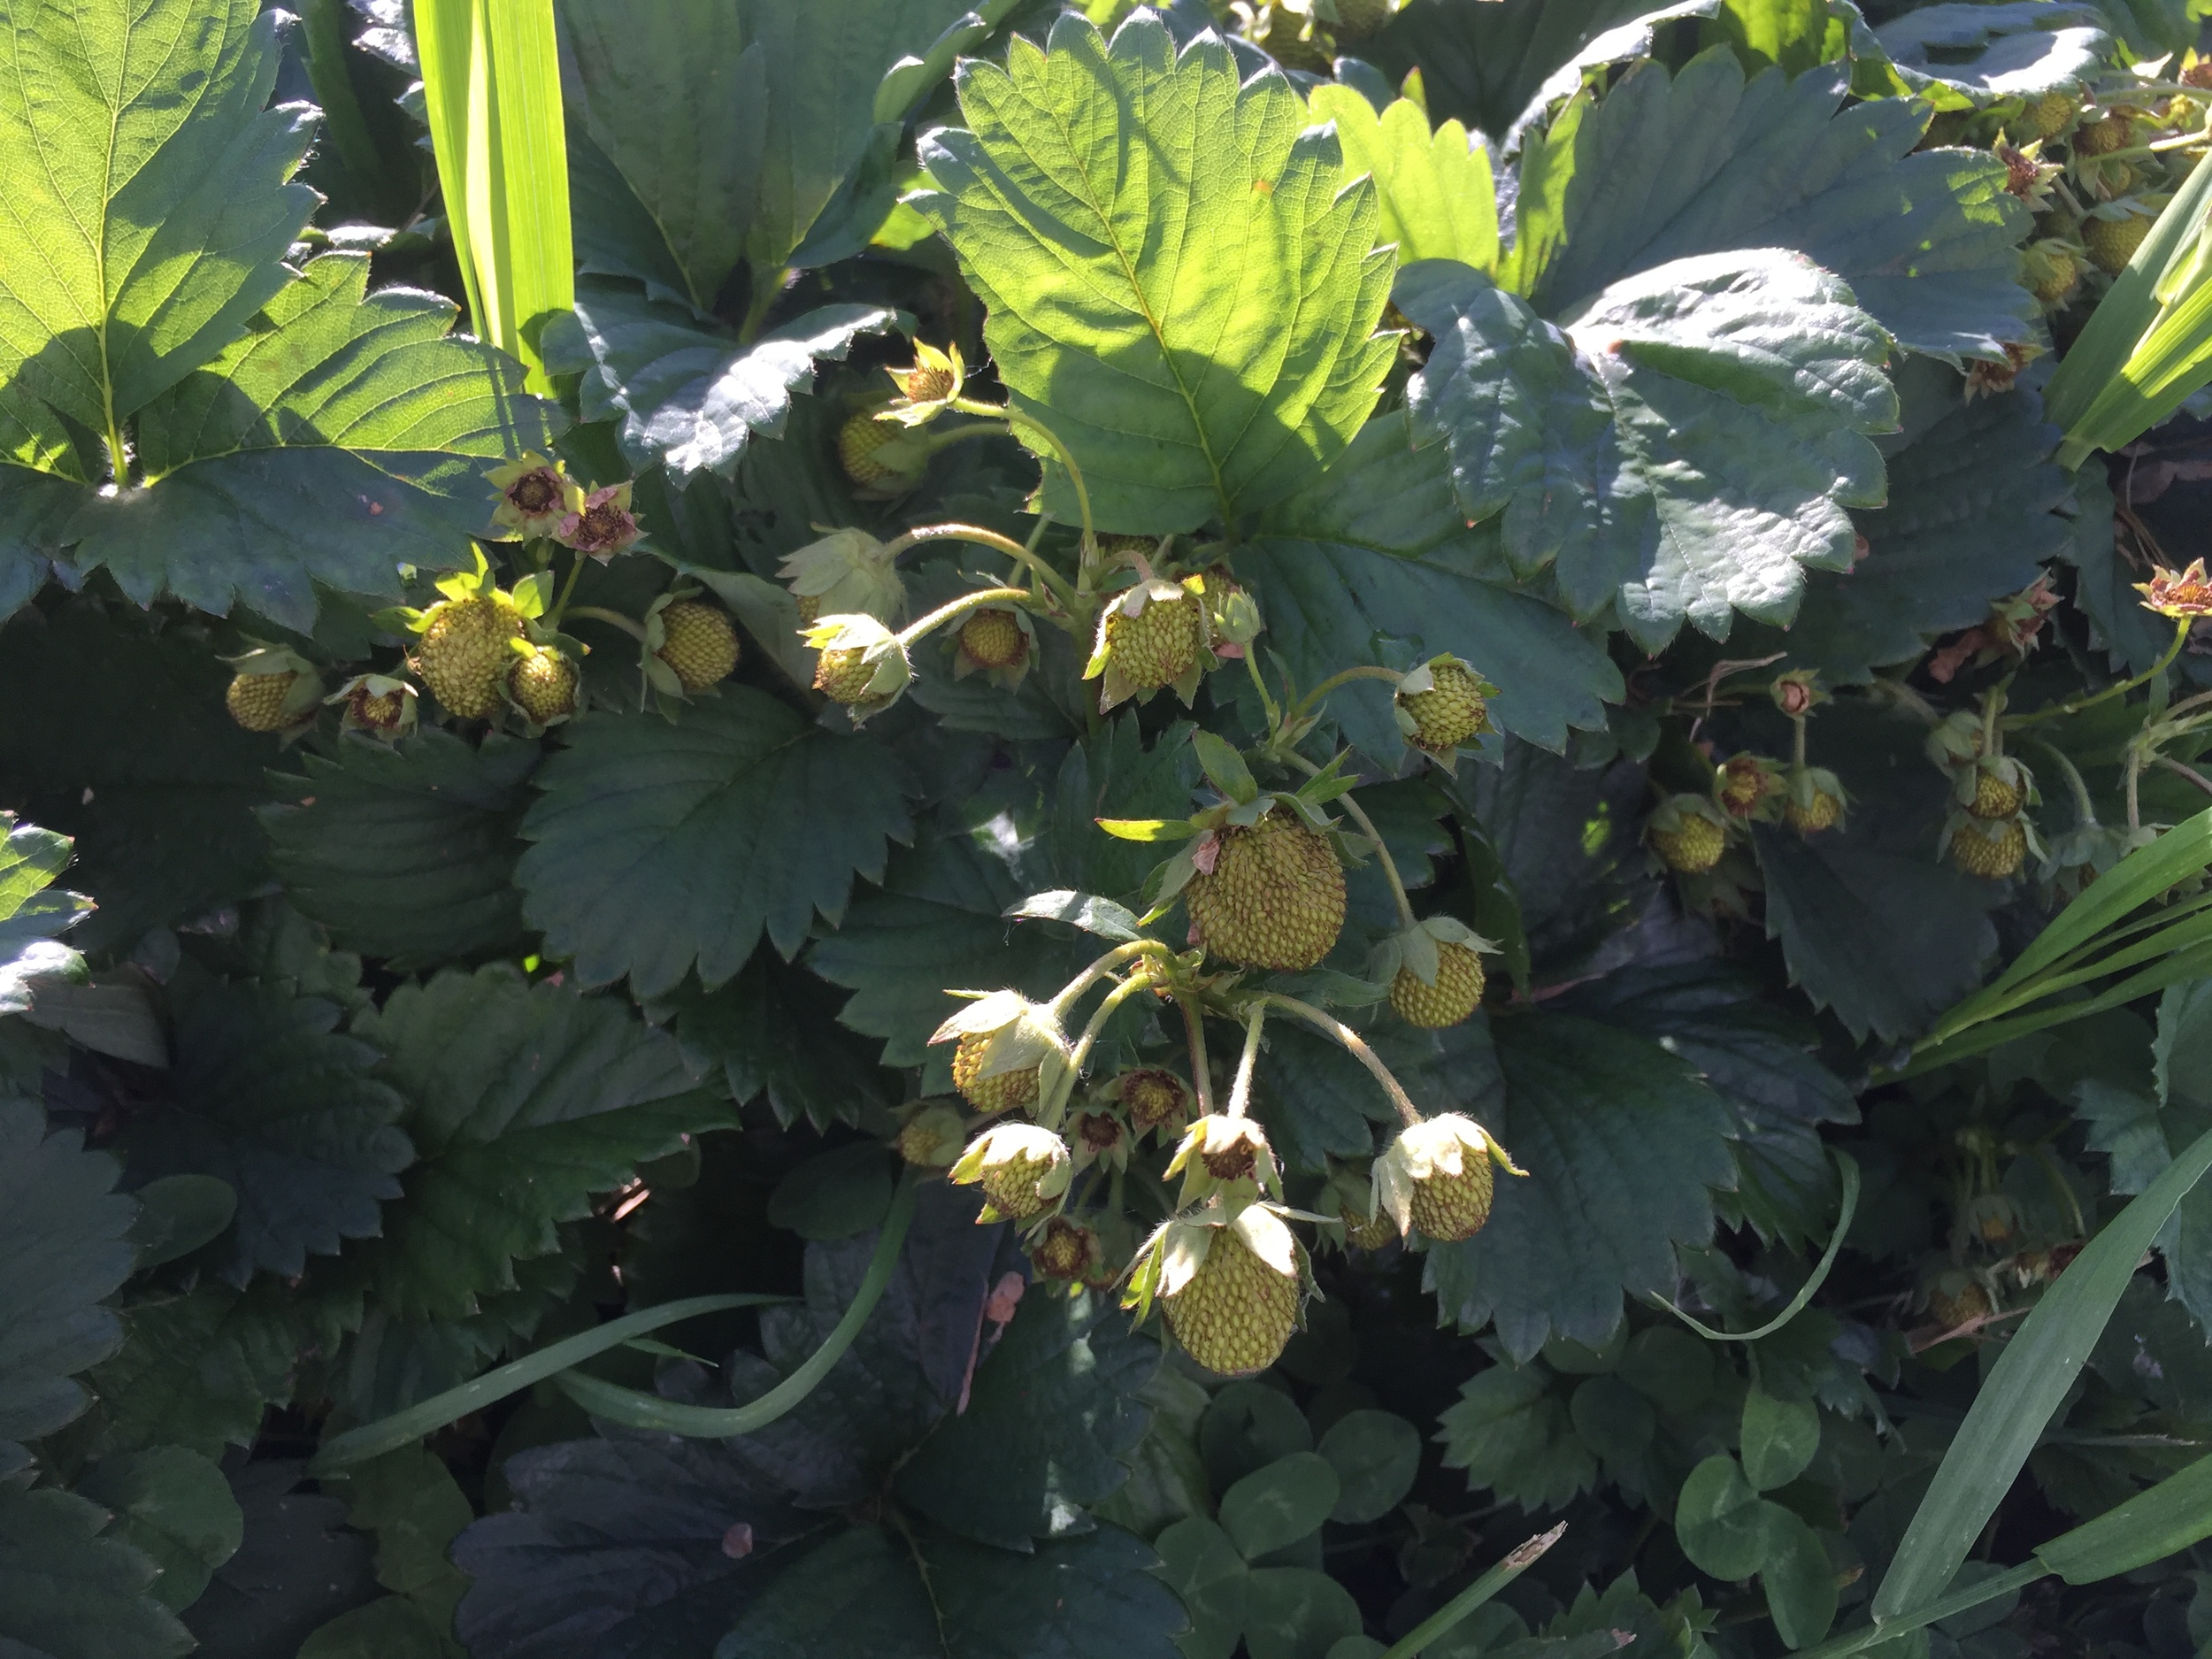 Strawberries are getting close!